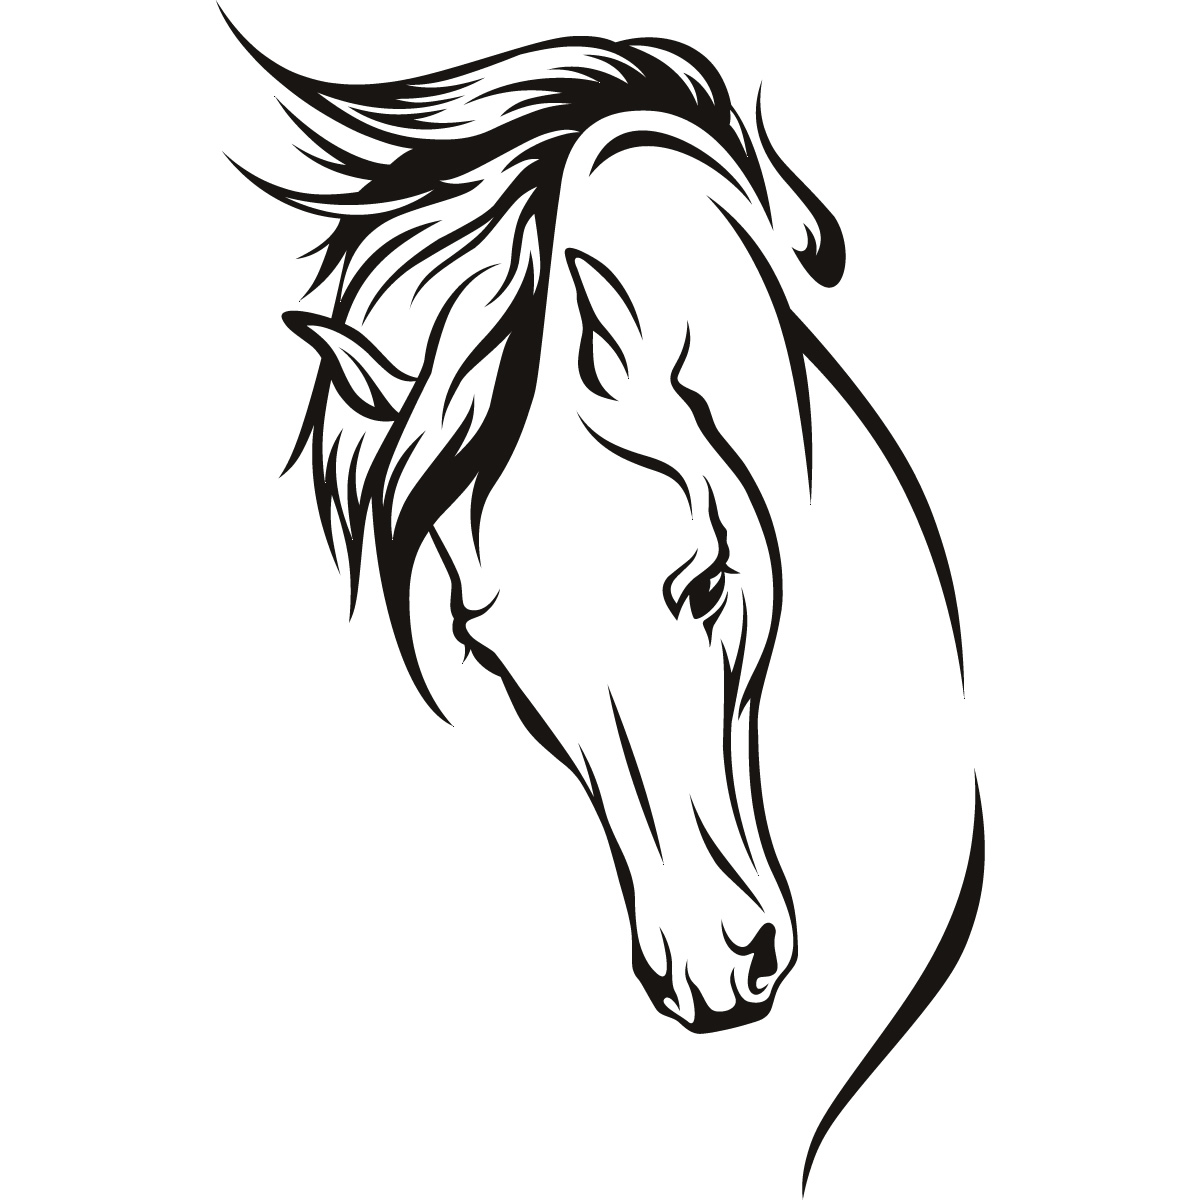 1200x1200 Horse Head Drawings Clip Art Horse Head Gallery For Free Horse